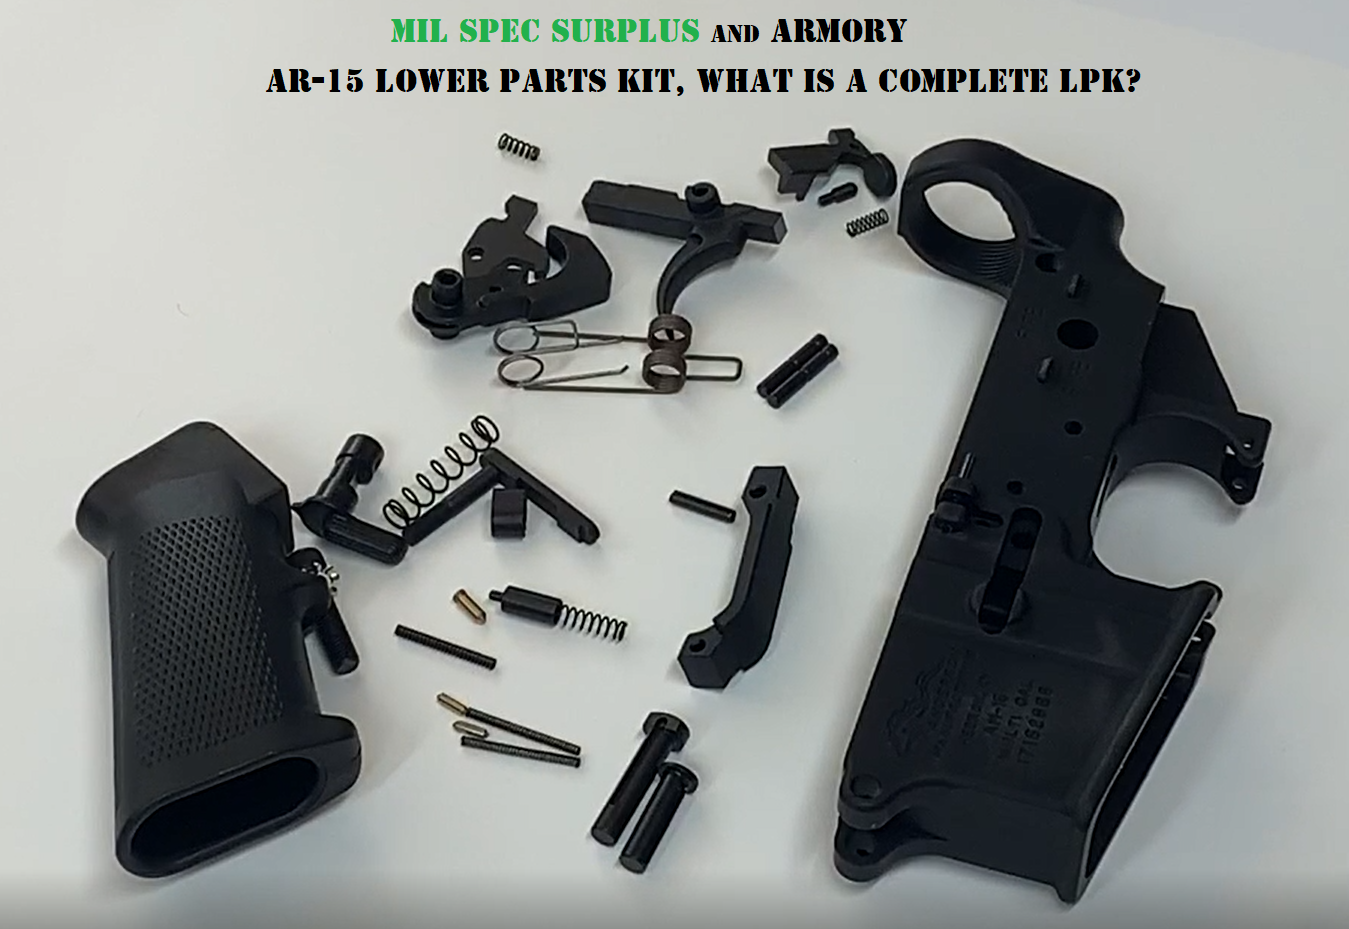 Complete Lower Parts Kit Video Review